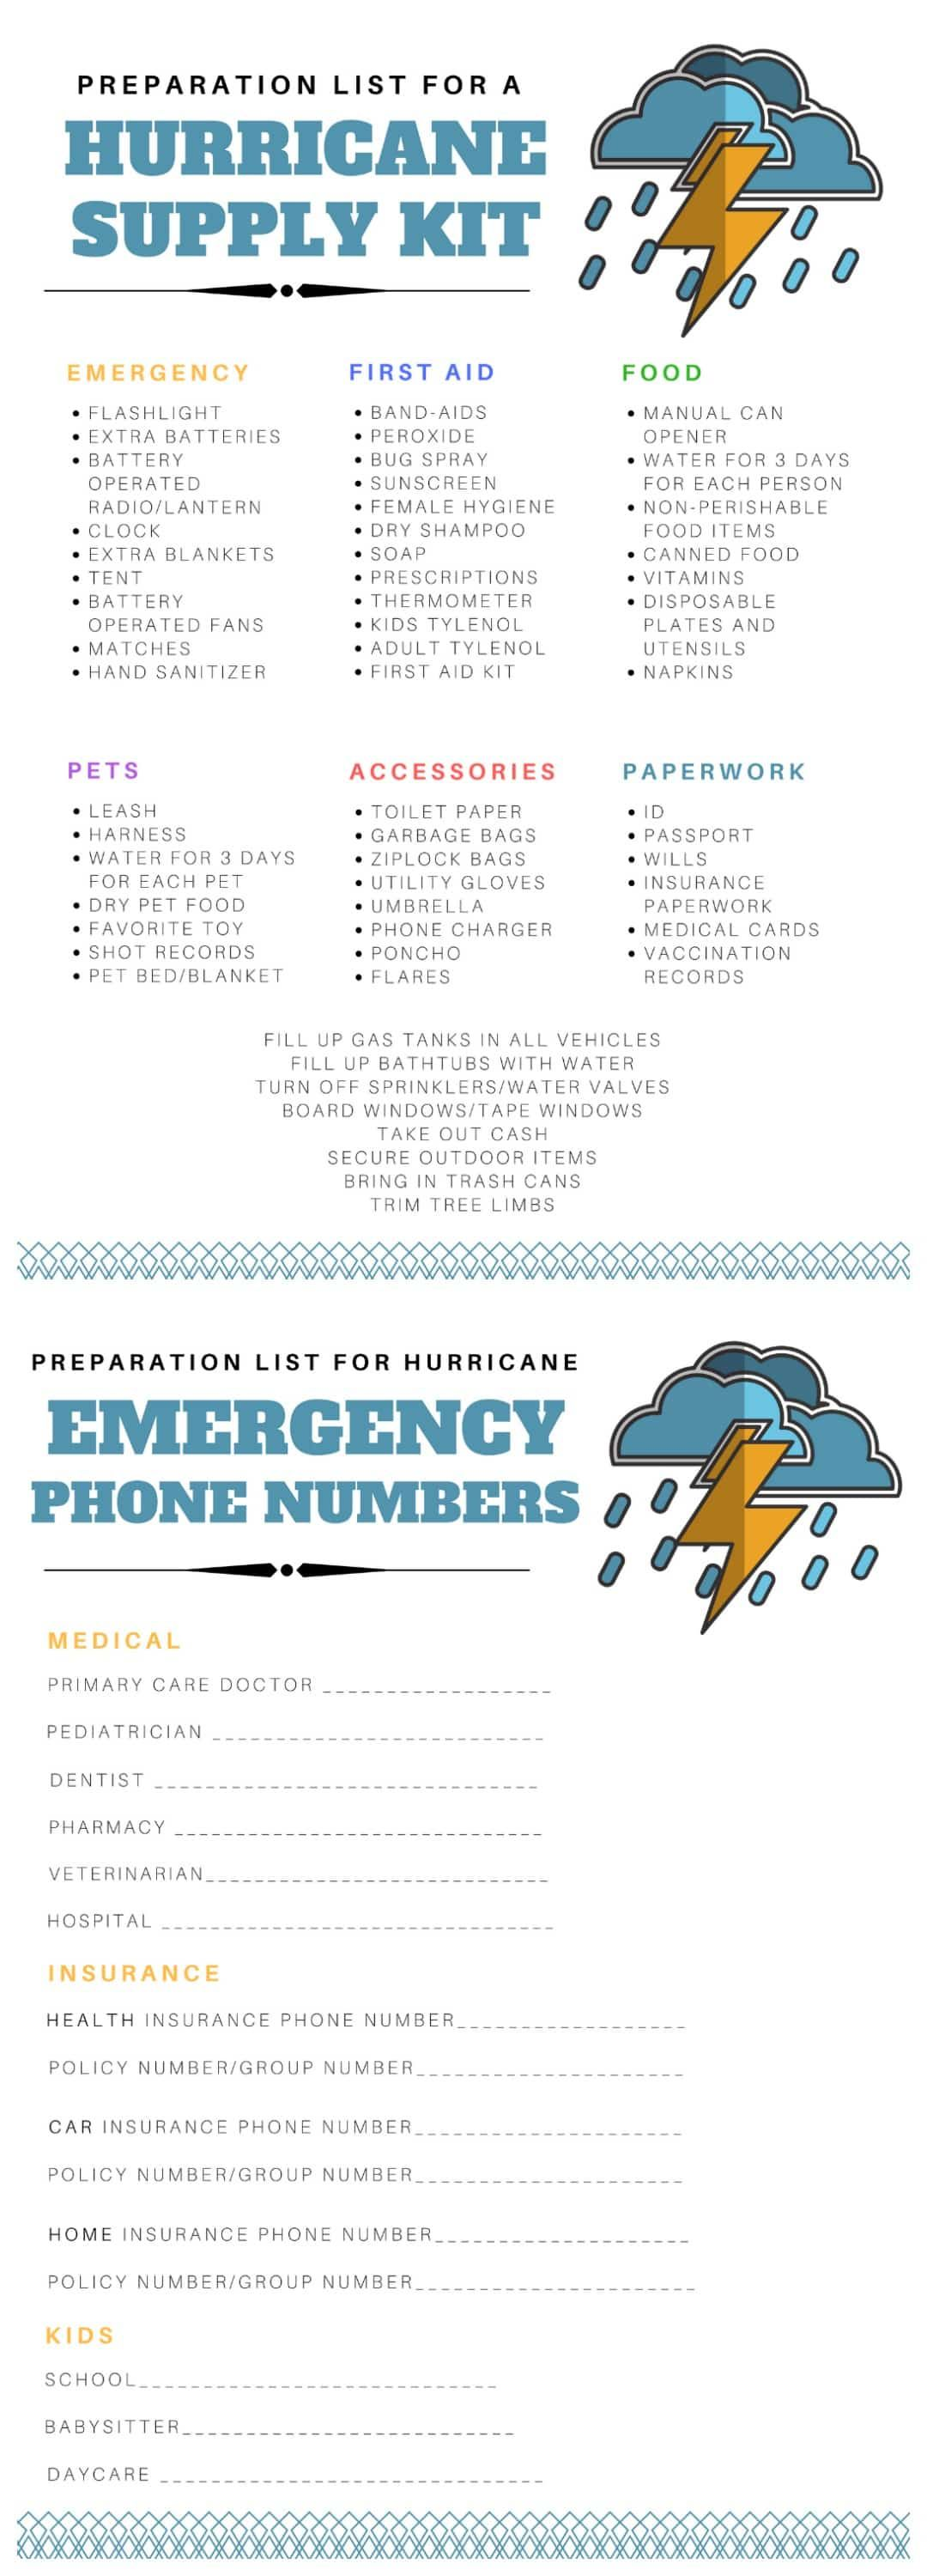 Hurricane Preparation List